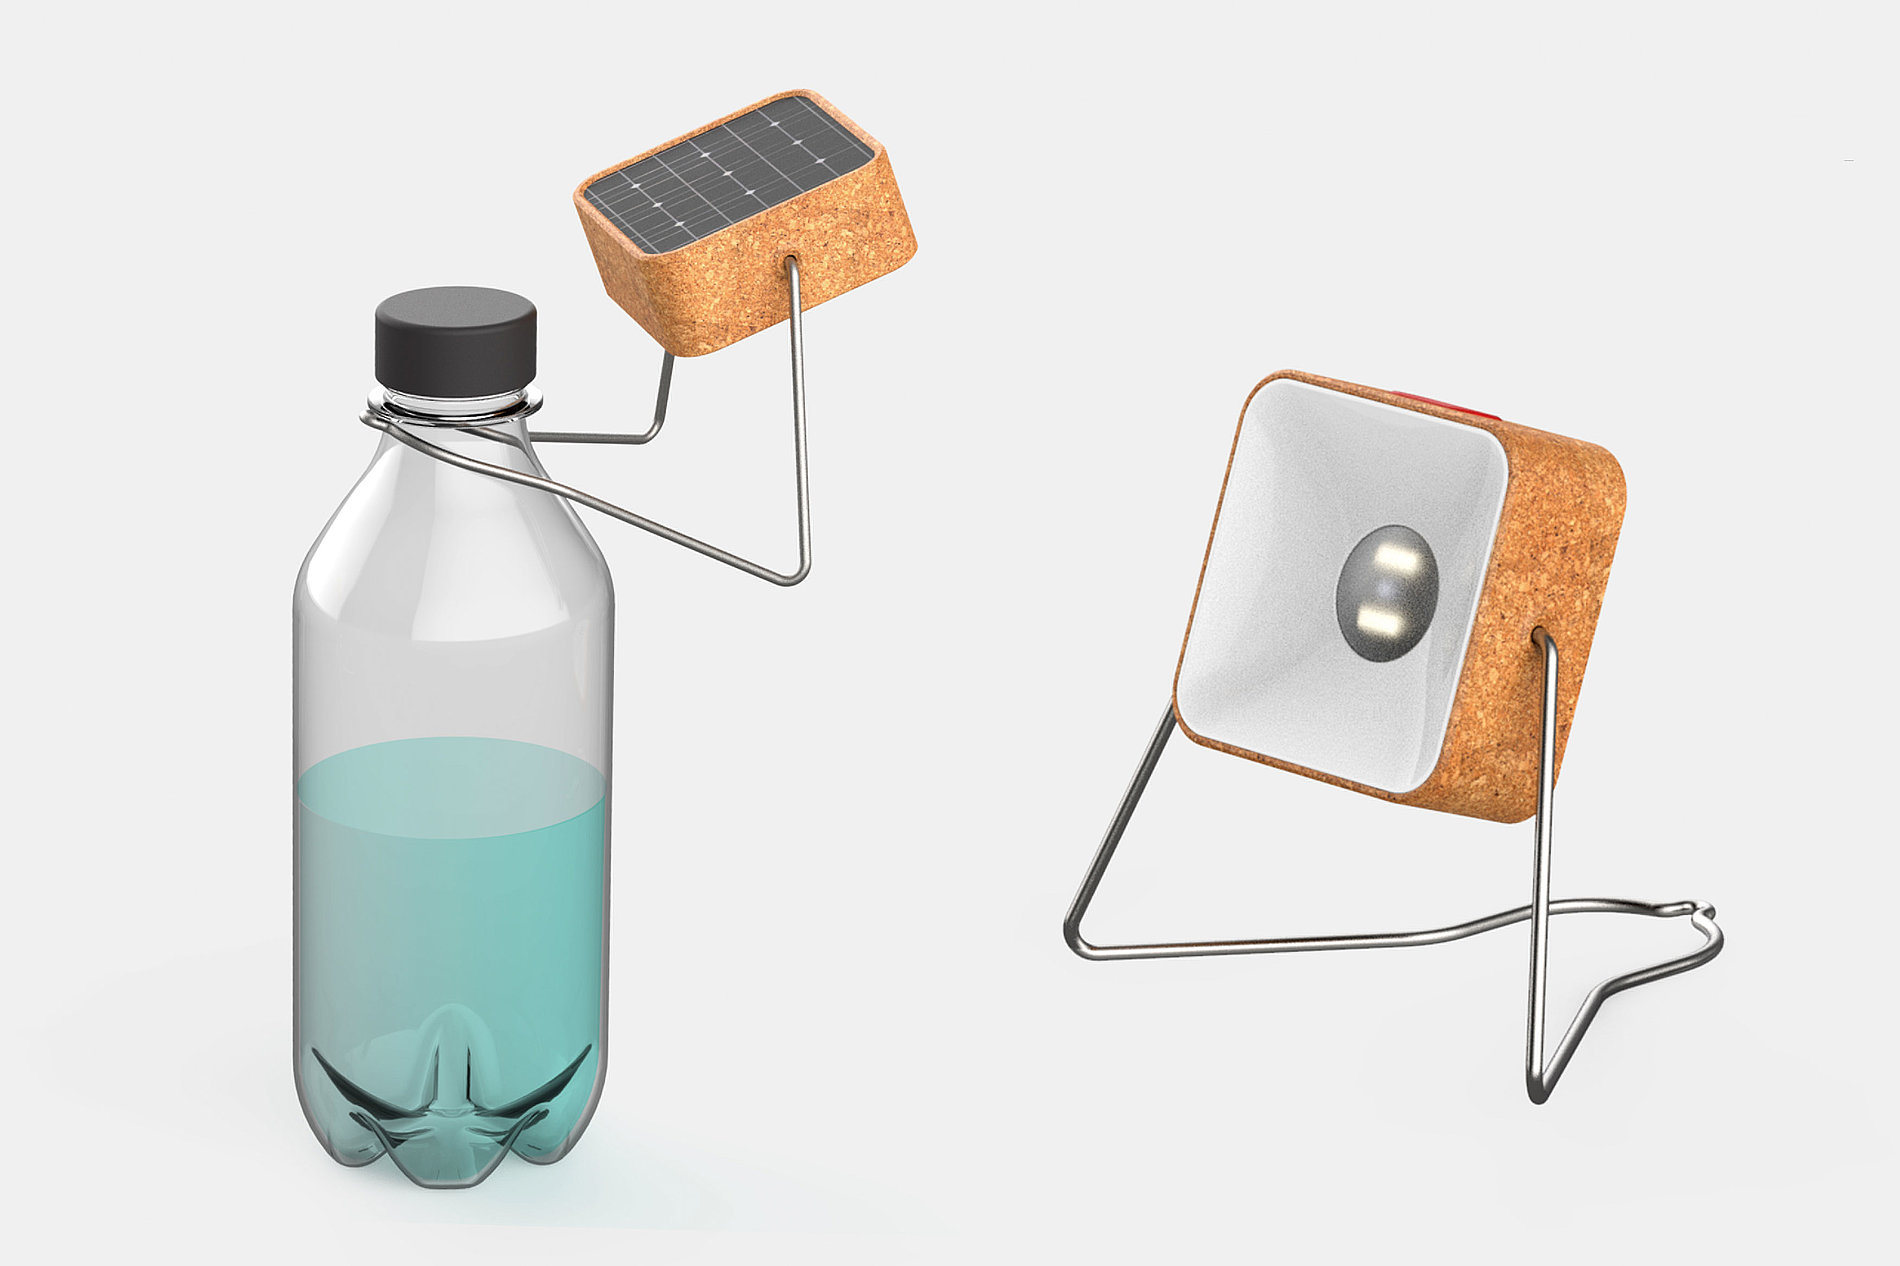 Bottle Pedestal Solar Lamp | Red Dot Design Award